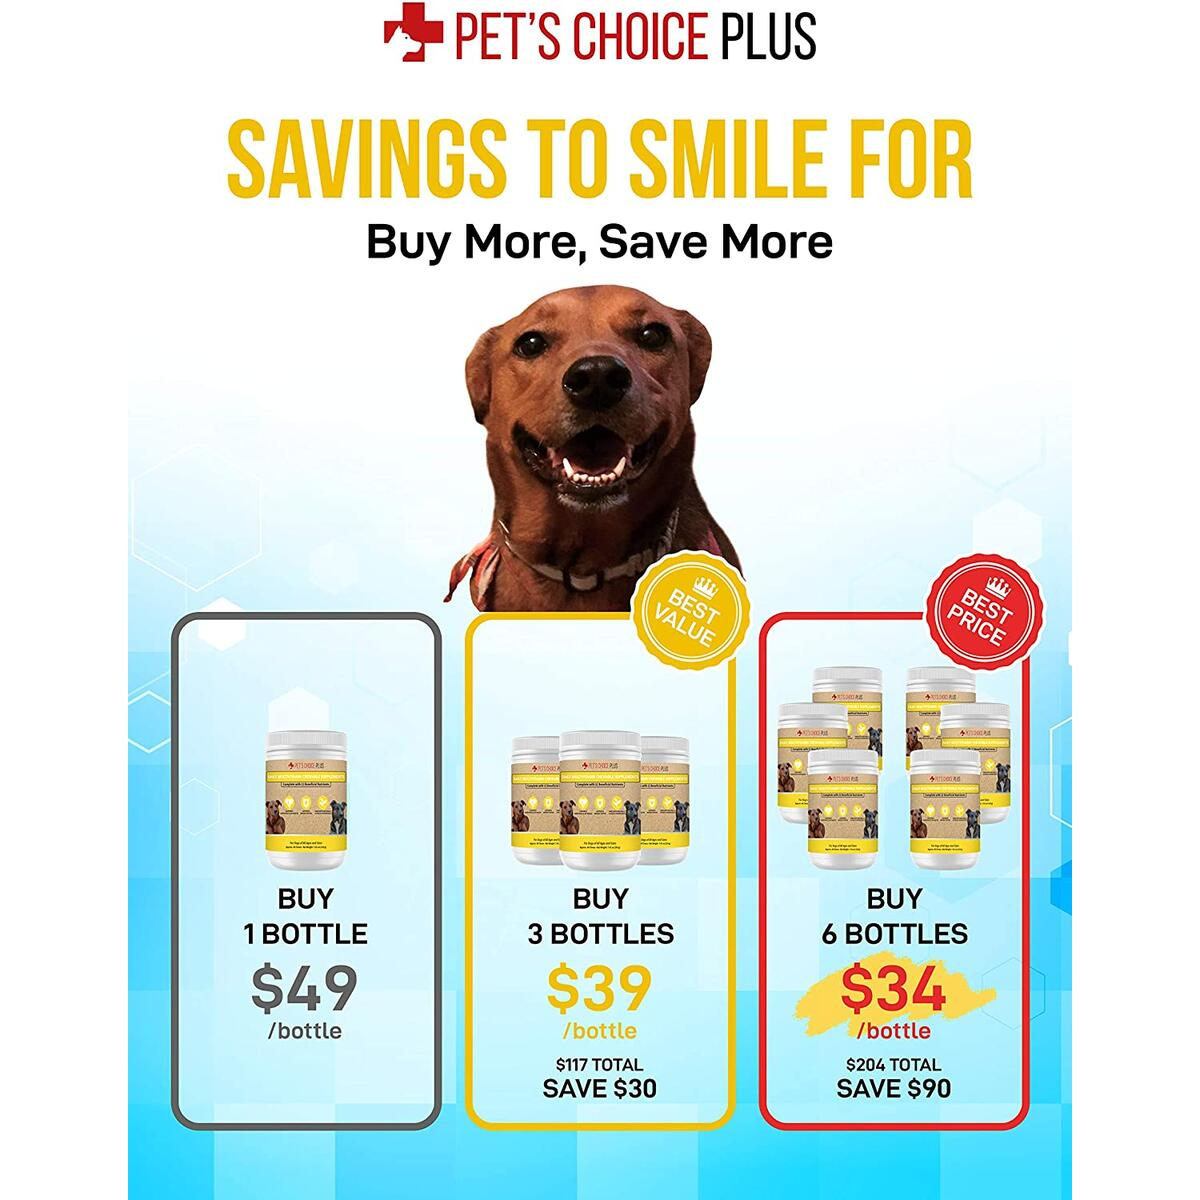 Pet's Choice Plus Daily Multivitamin and Mineral Supplement with Essential Fatty Acids and Antioxidants – Strong Immune and Cardiovascular System, Bones, Teeth, Eye, Skin Health